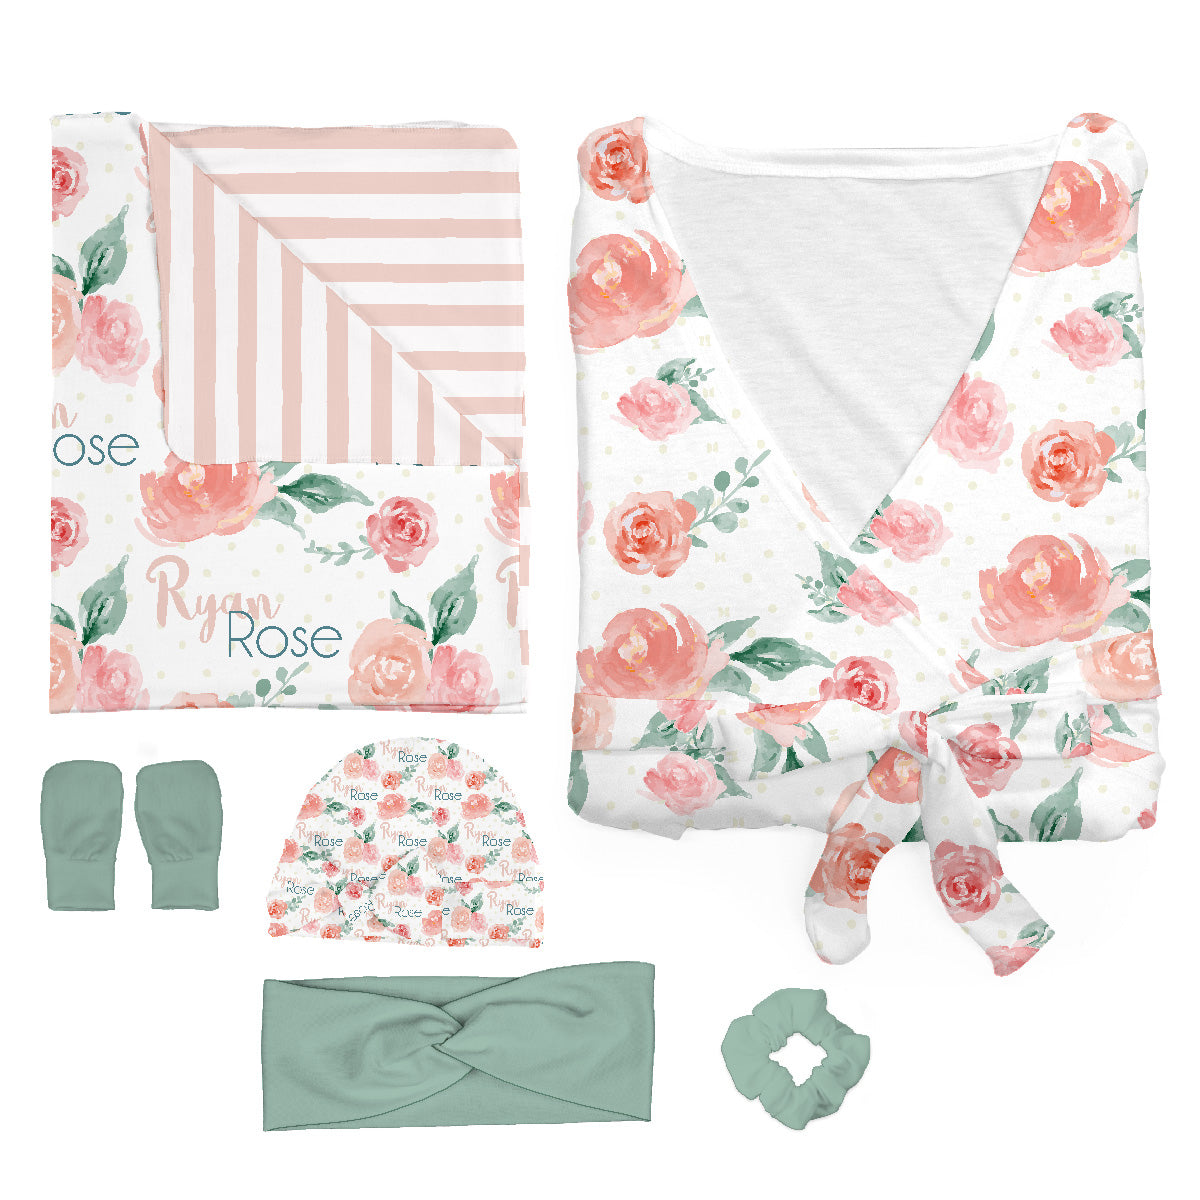 Ryan Rose | Mommy and Me Bundle